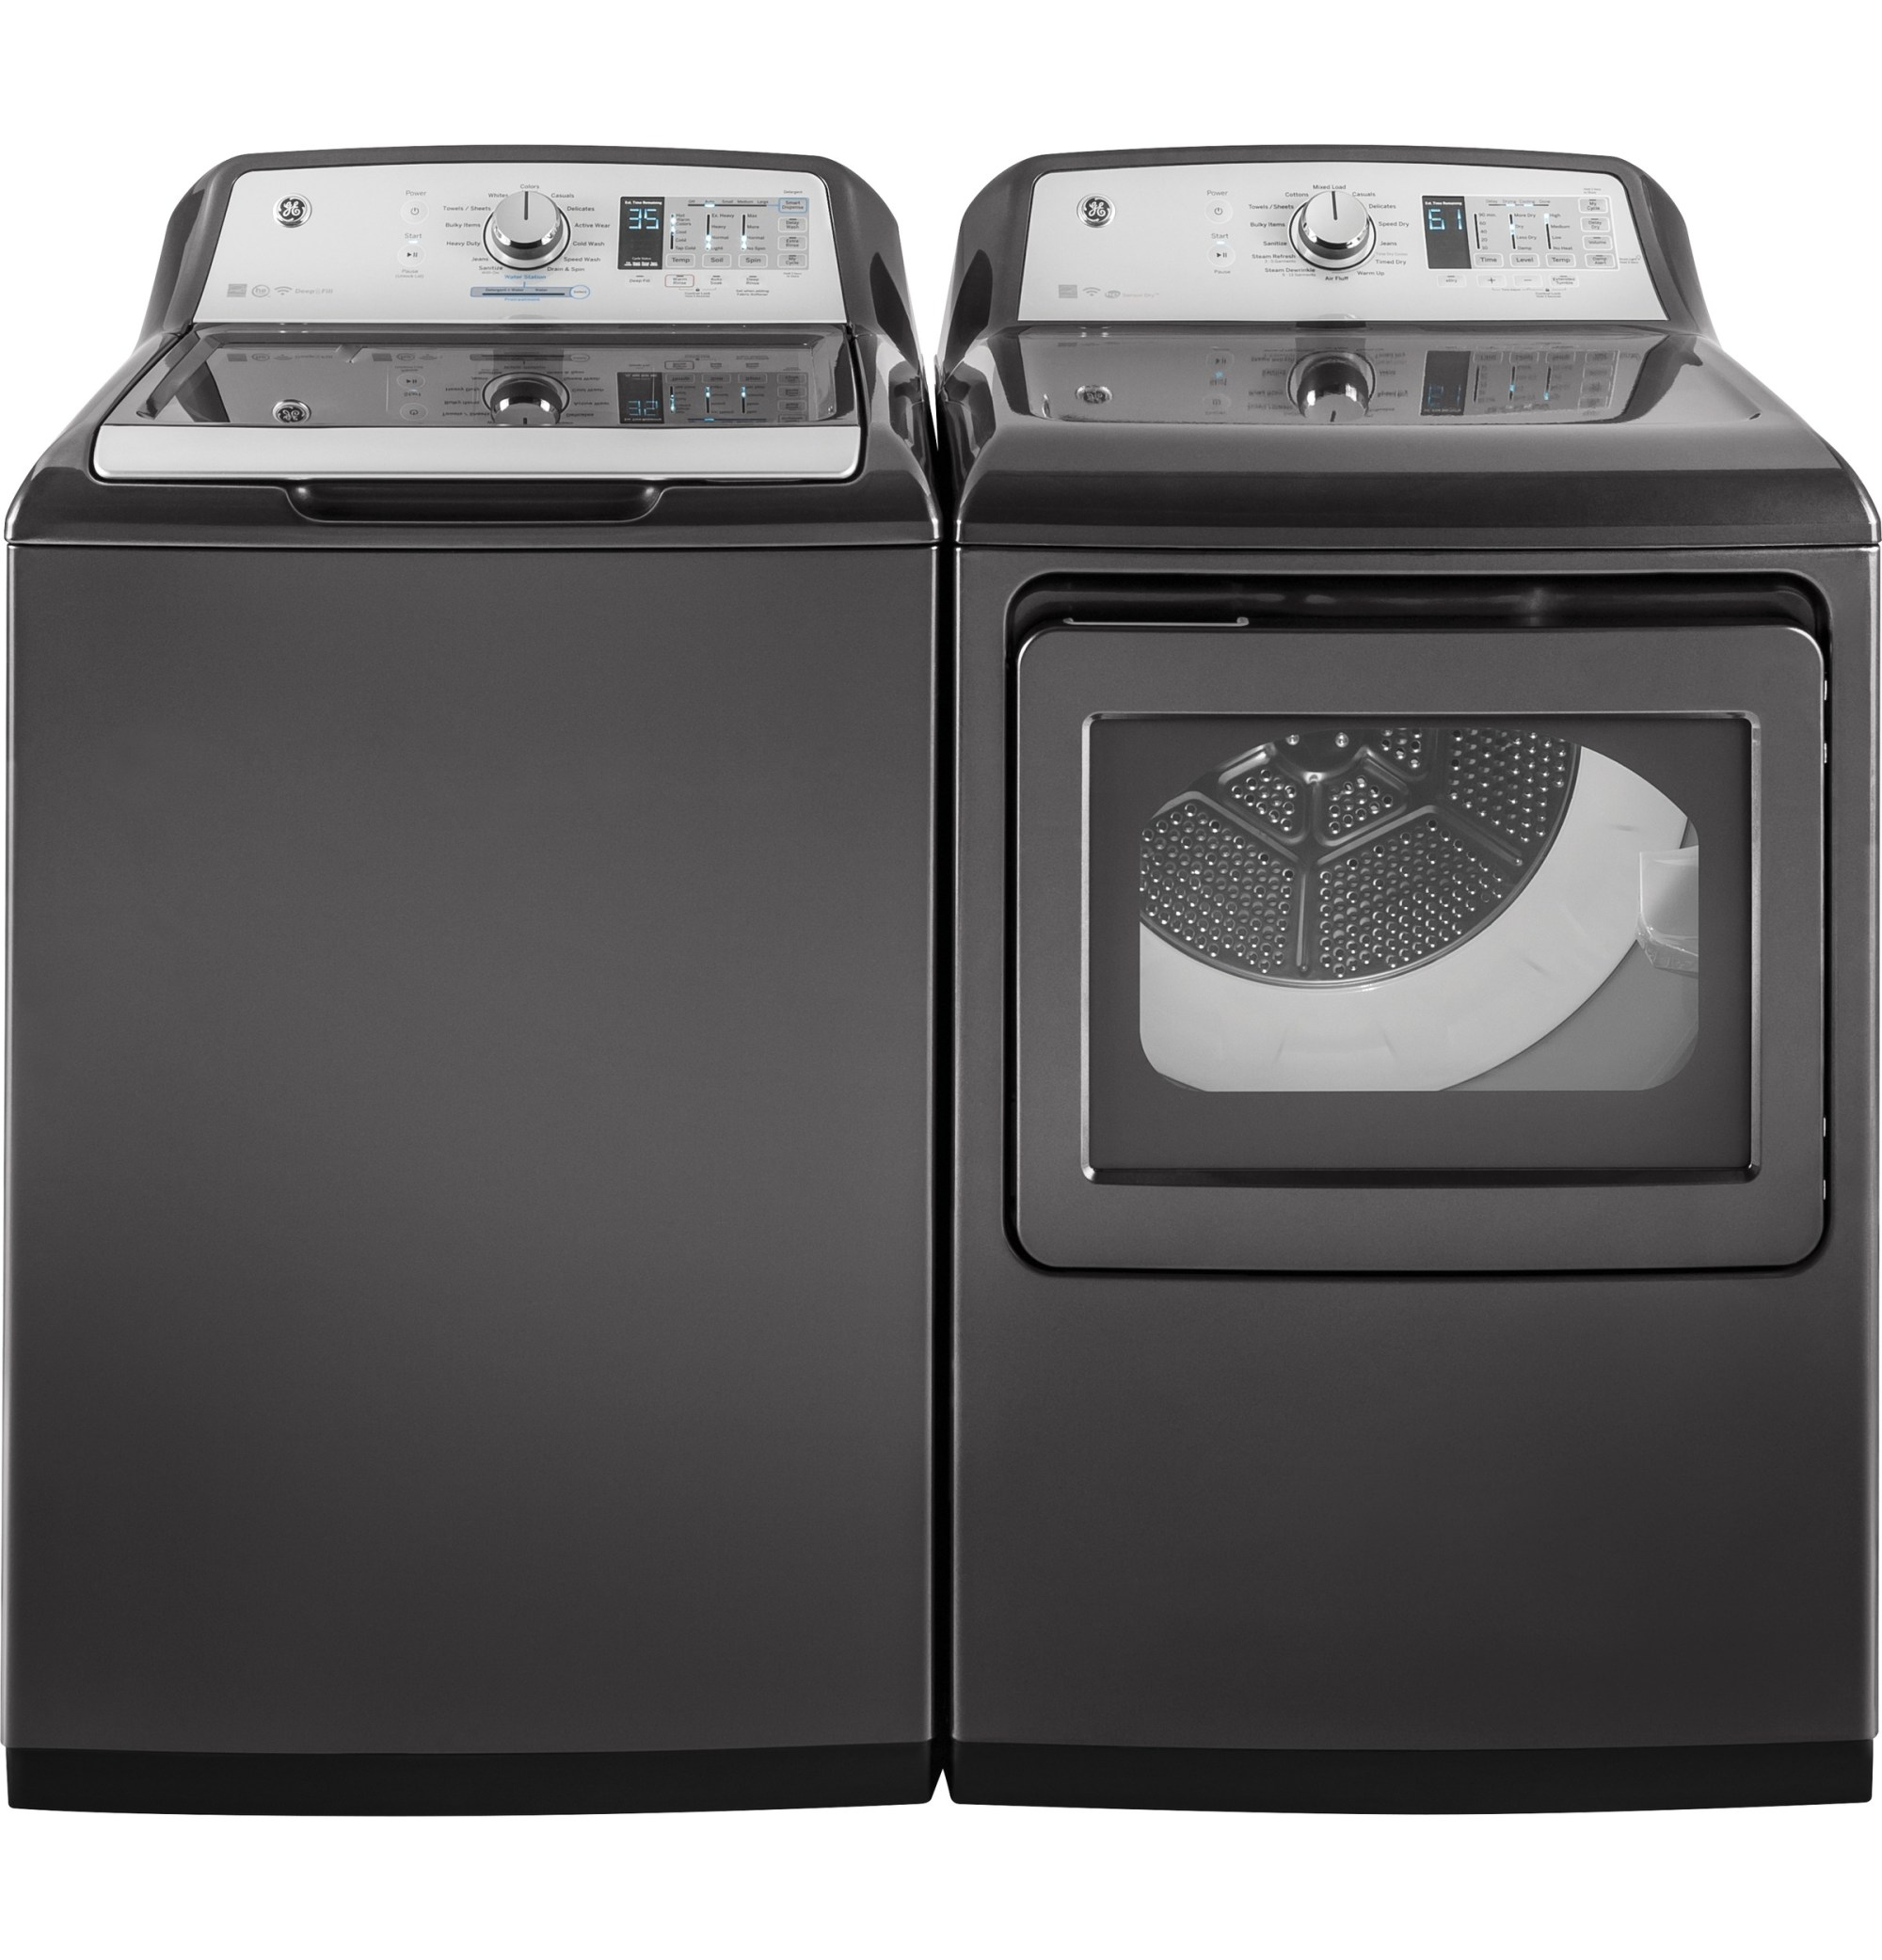 hight resolution of model gtw750cpldg ge 5 0 cu ft capacity washer with stainless steel